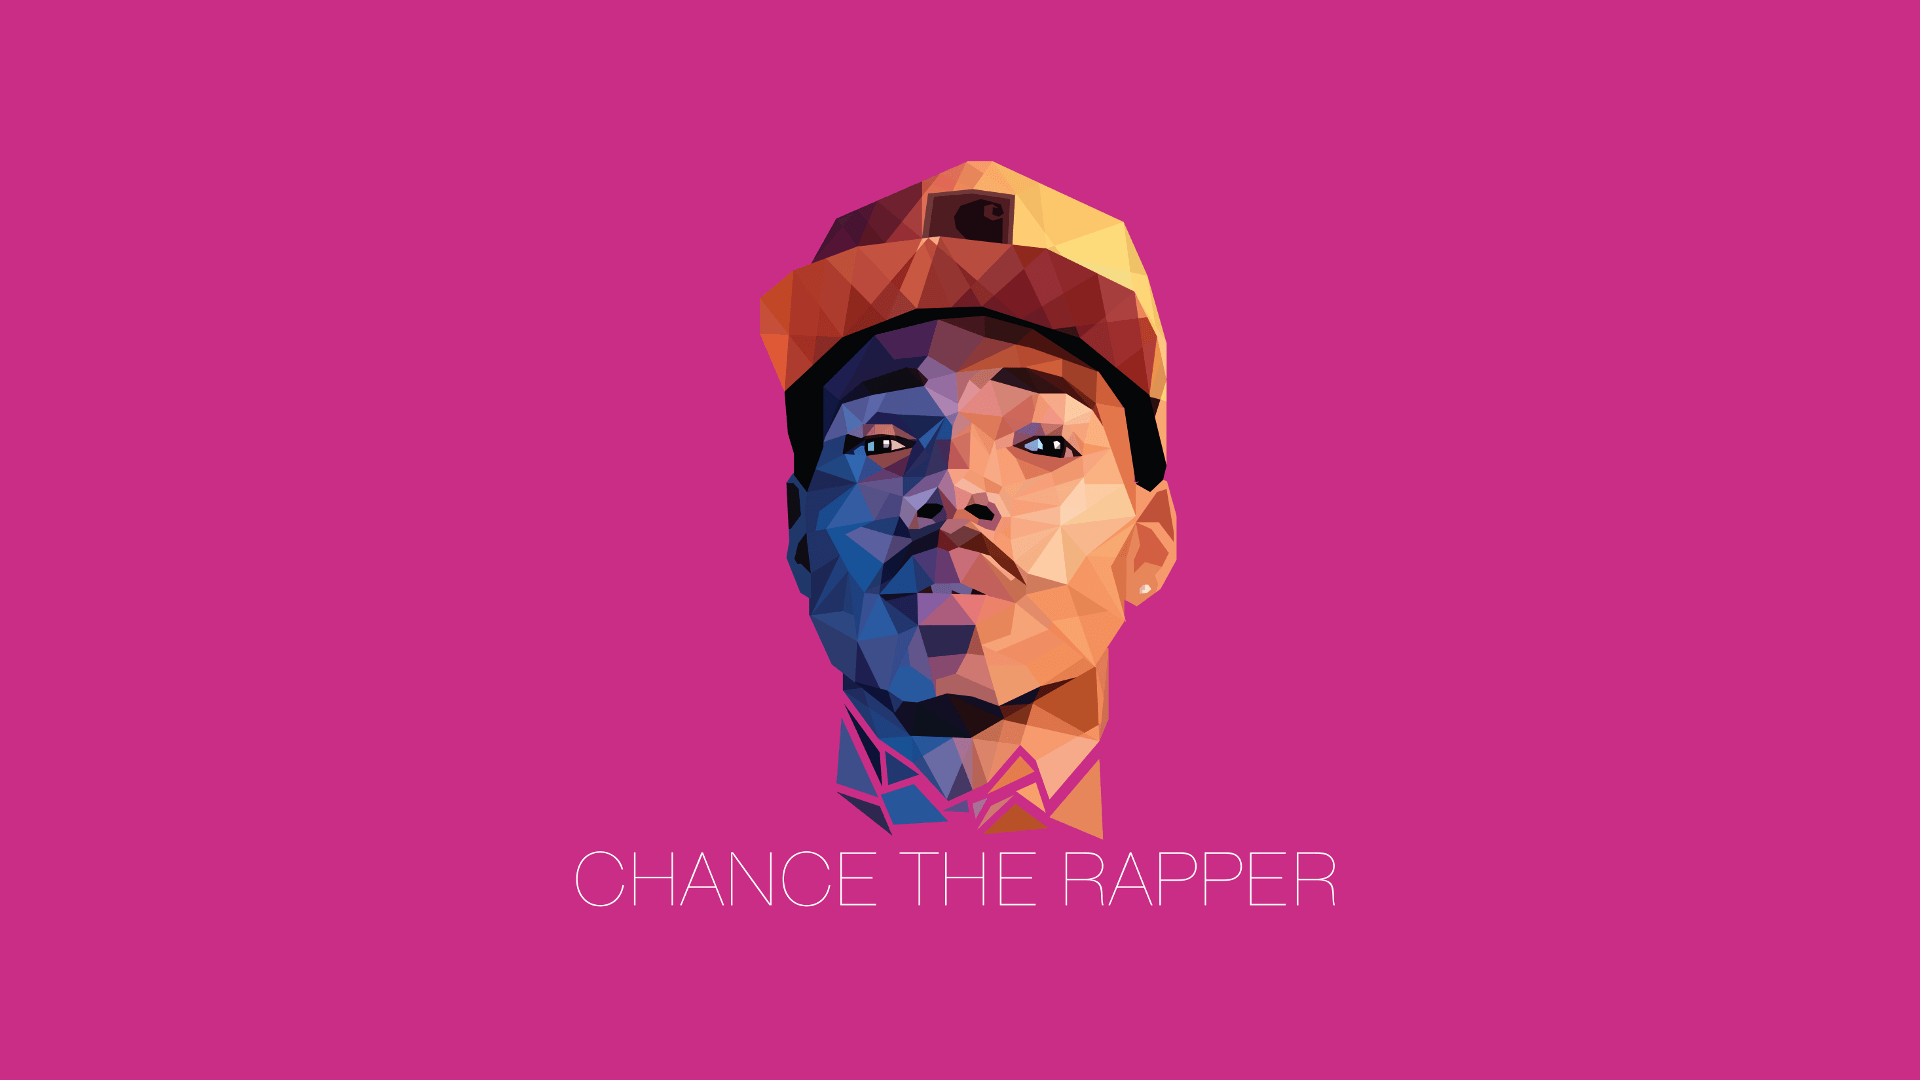 1920x1080 Best 63+ Rapper Wallpaper on HipWallpaper | Futuristic ...